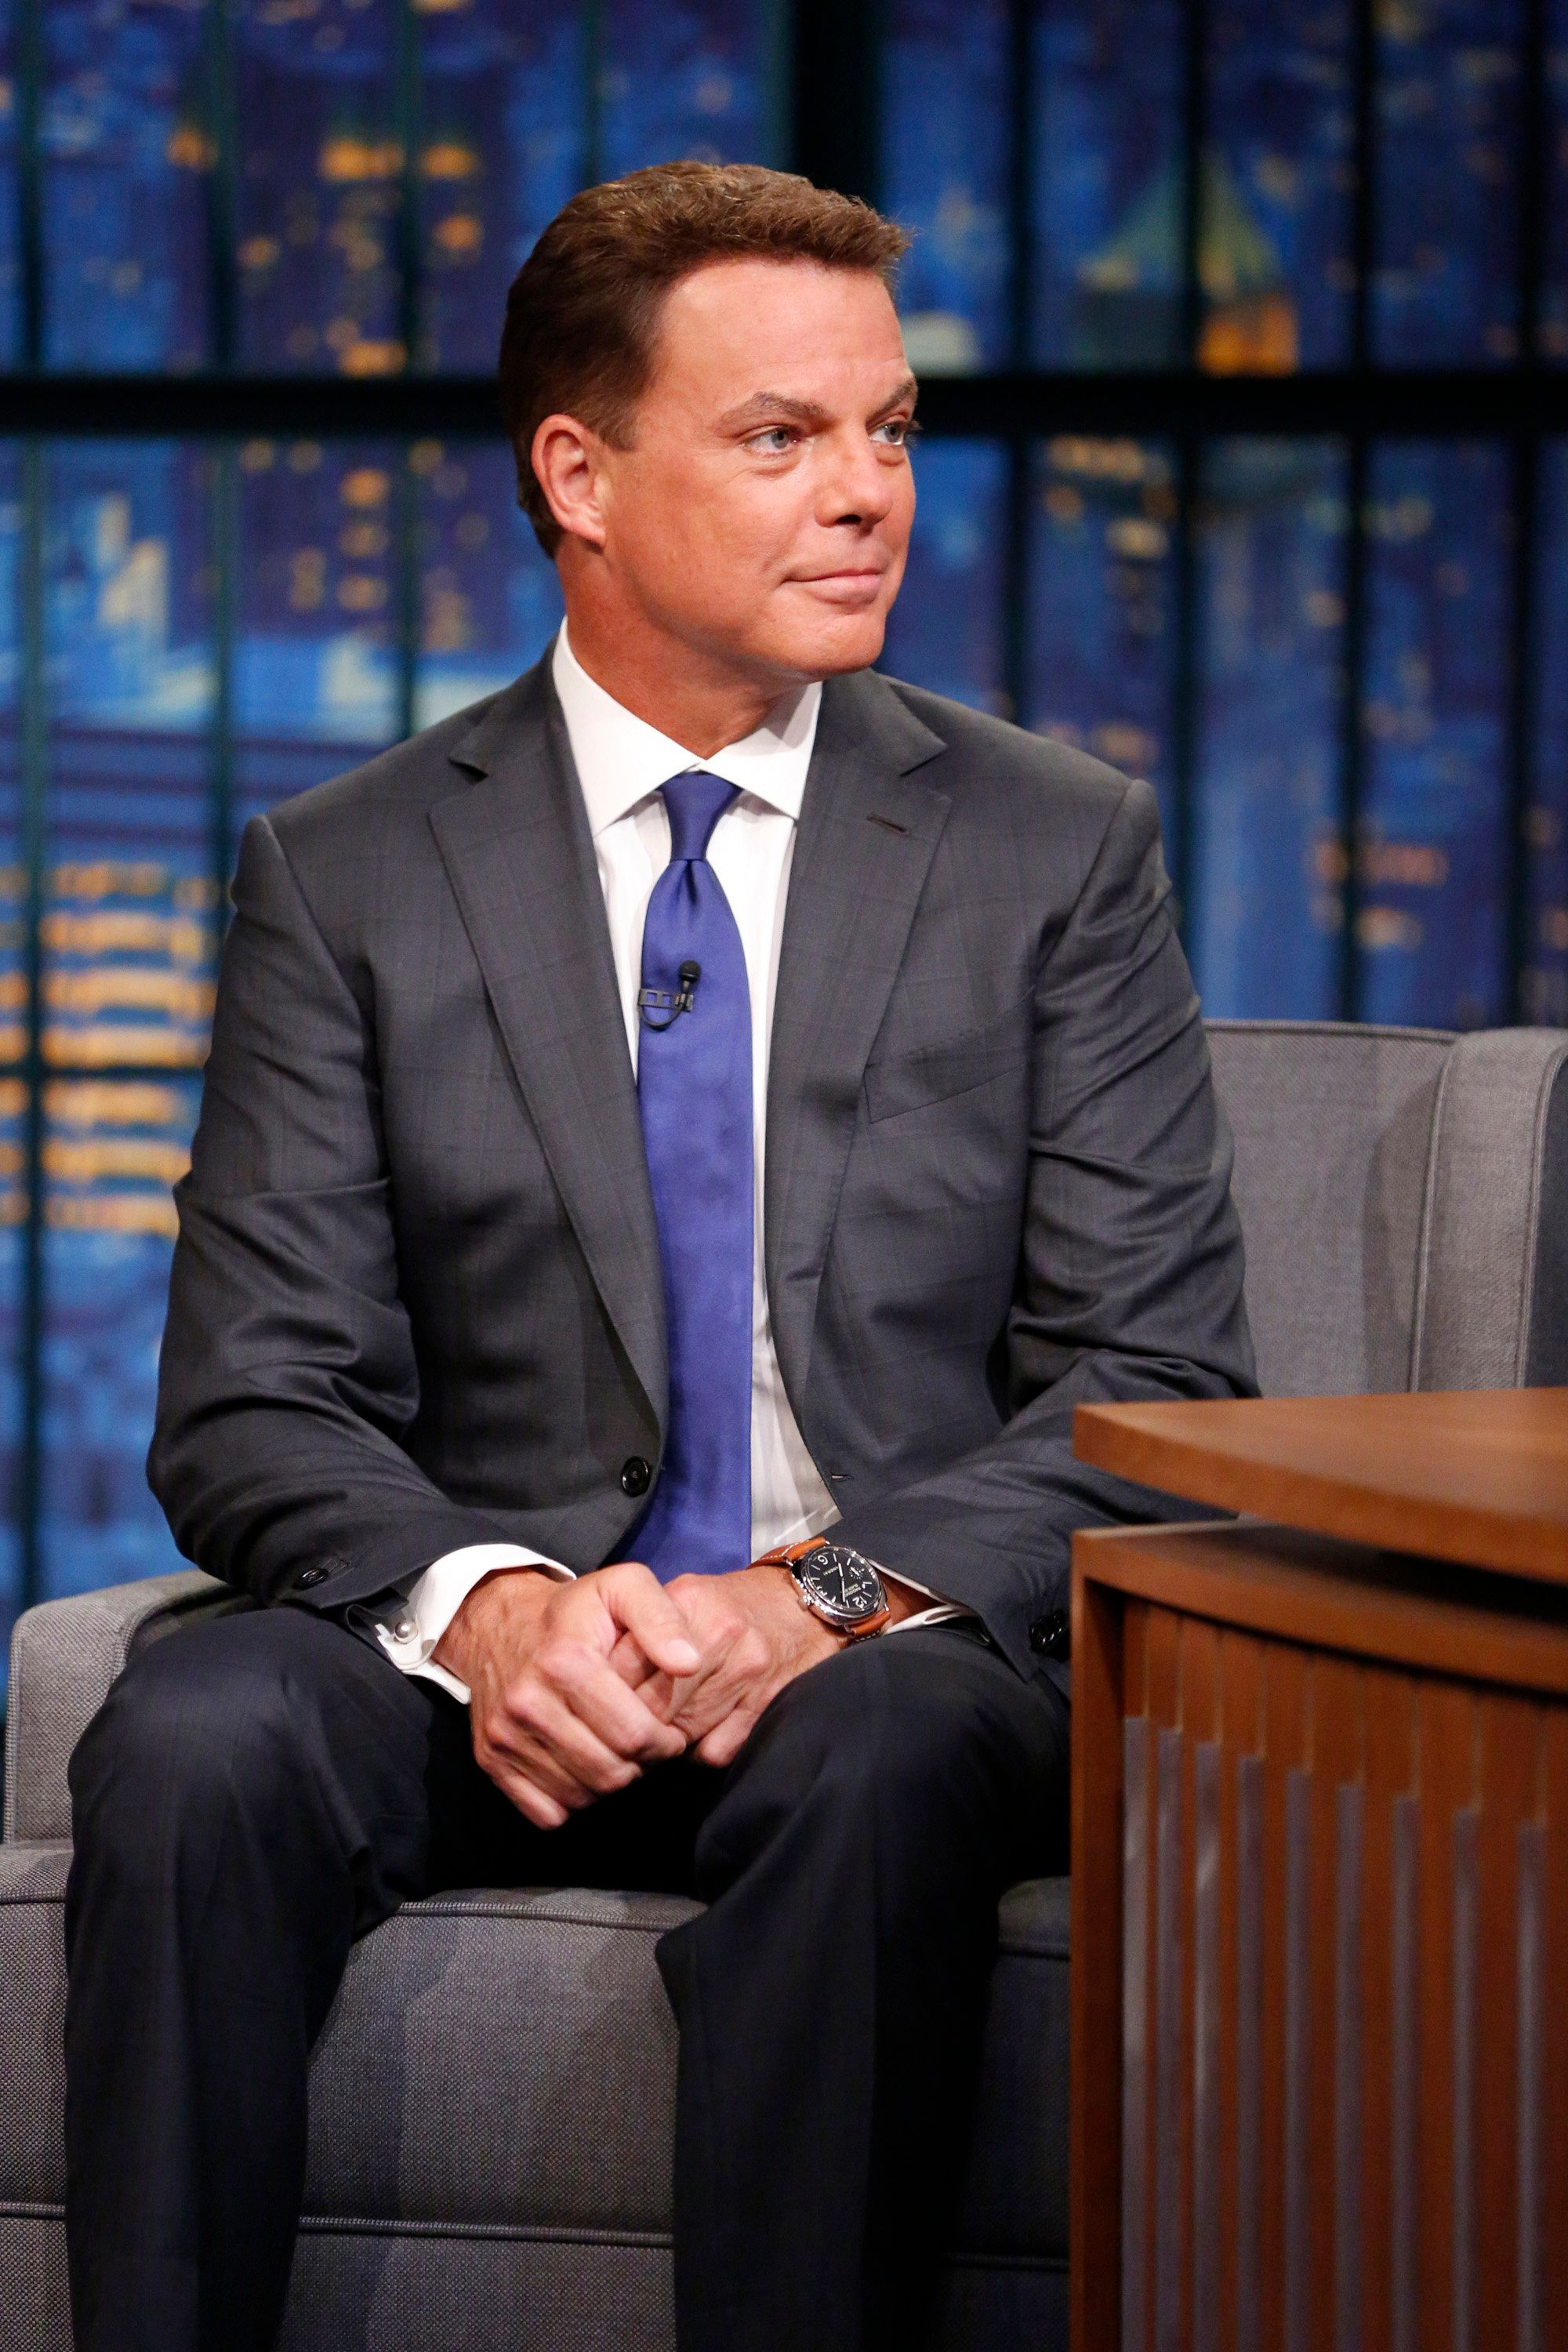 LATE NIGHT WITH SETH MEYERS -- Episode 248 -- Pictured: Fox New's Shepard Smith during an interview on August 17, 2015 -- (Photo by: Lloyd Bishop/NBC/NBCU Photo Bank via Getty Images)